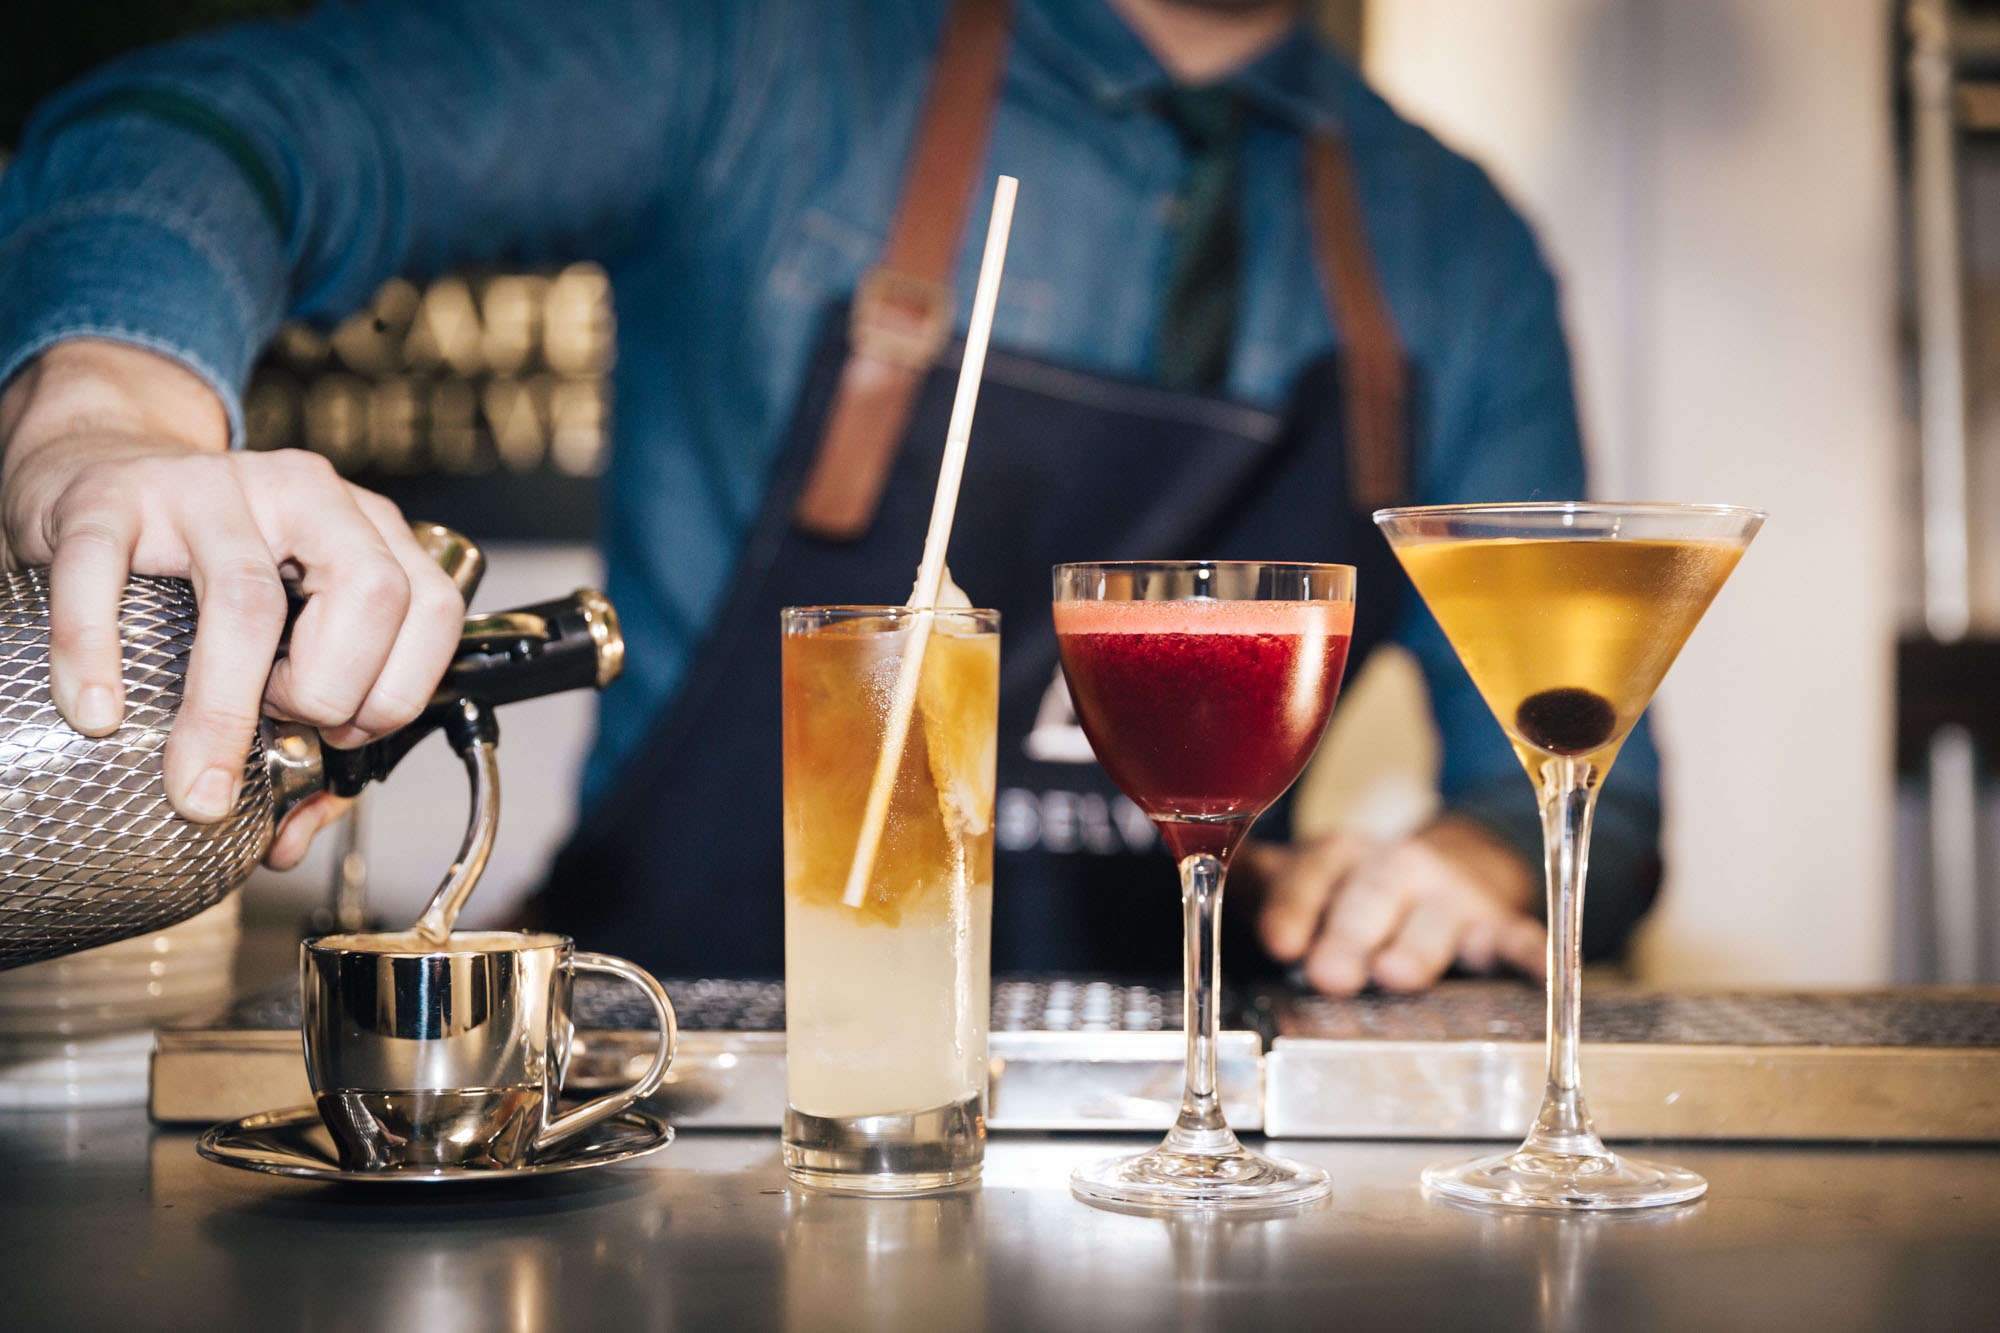 Belvedere Vodka launches Cafe Belvedere, a week long coffee cocktail pop up in Soho's Bateman Street open to consumers throughout London Fashion Week